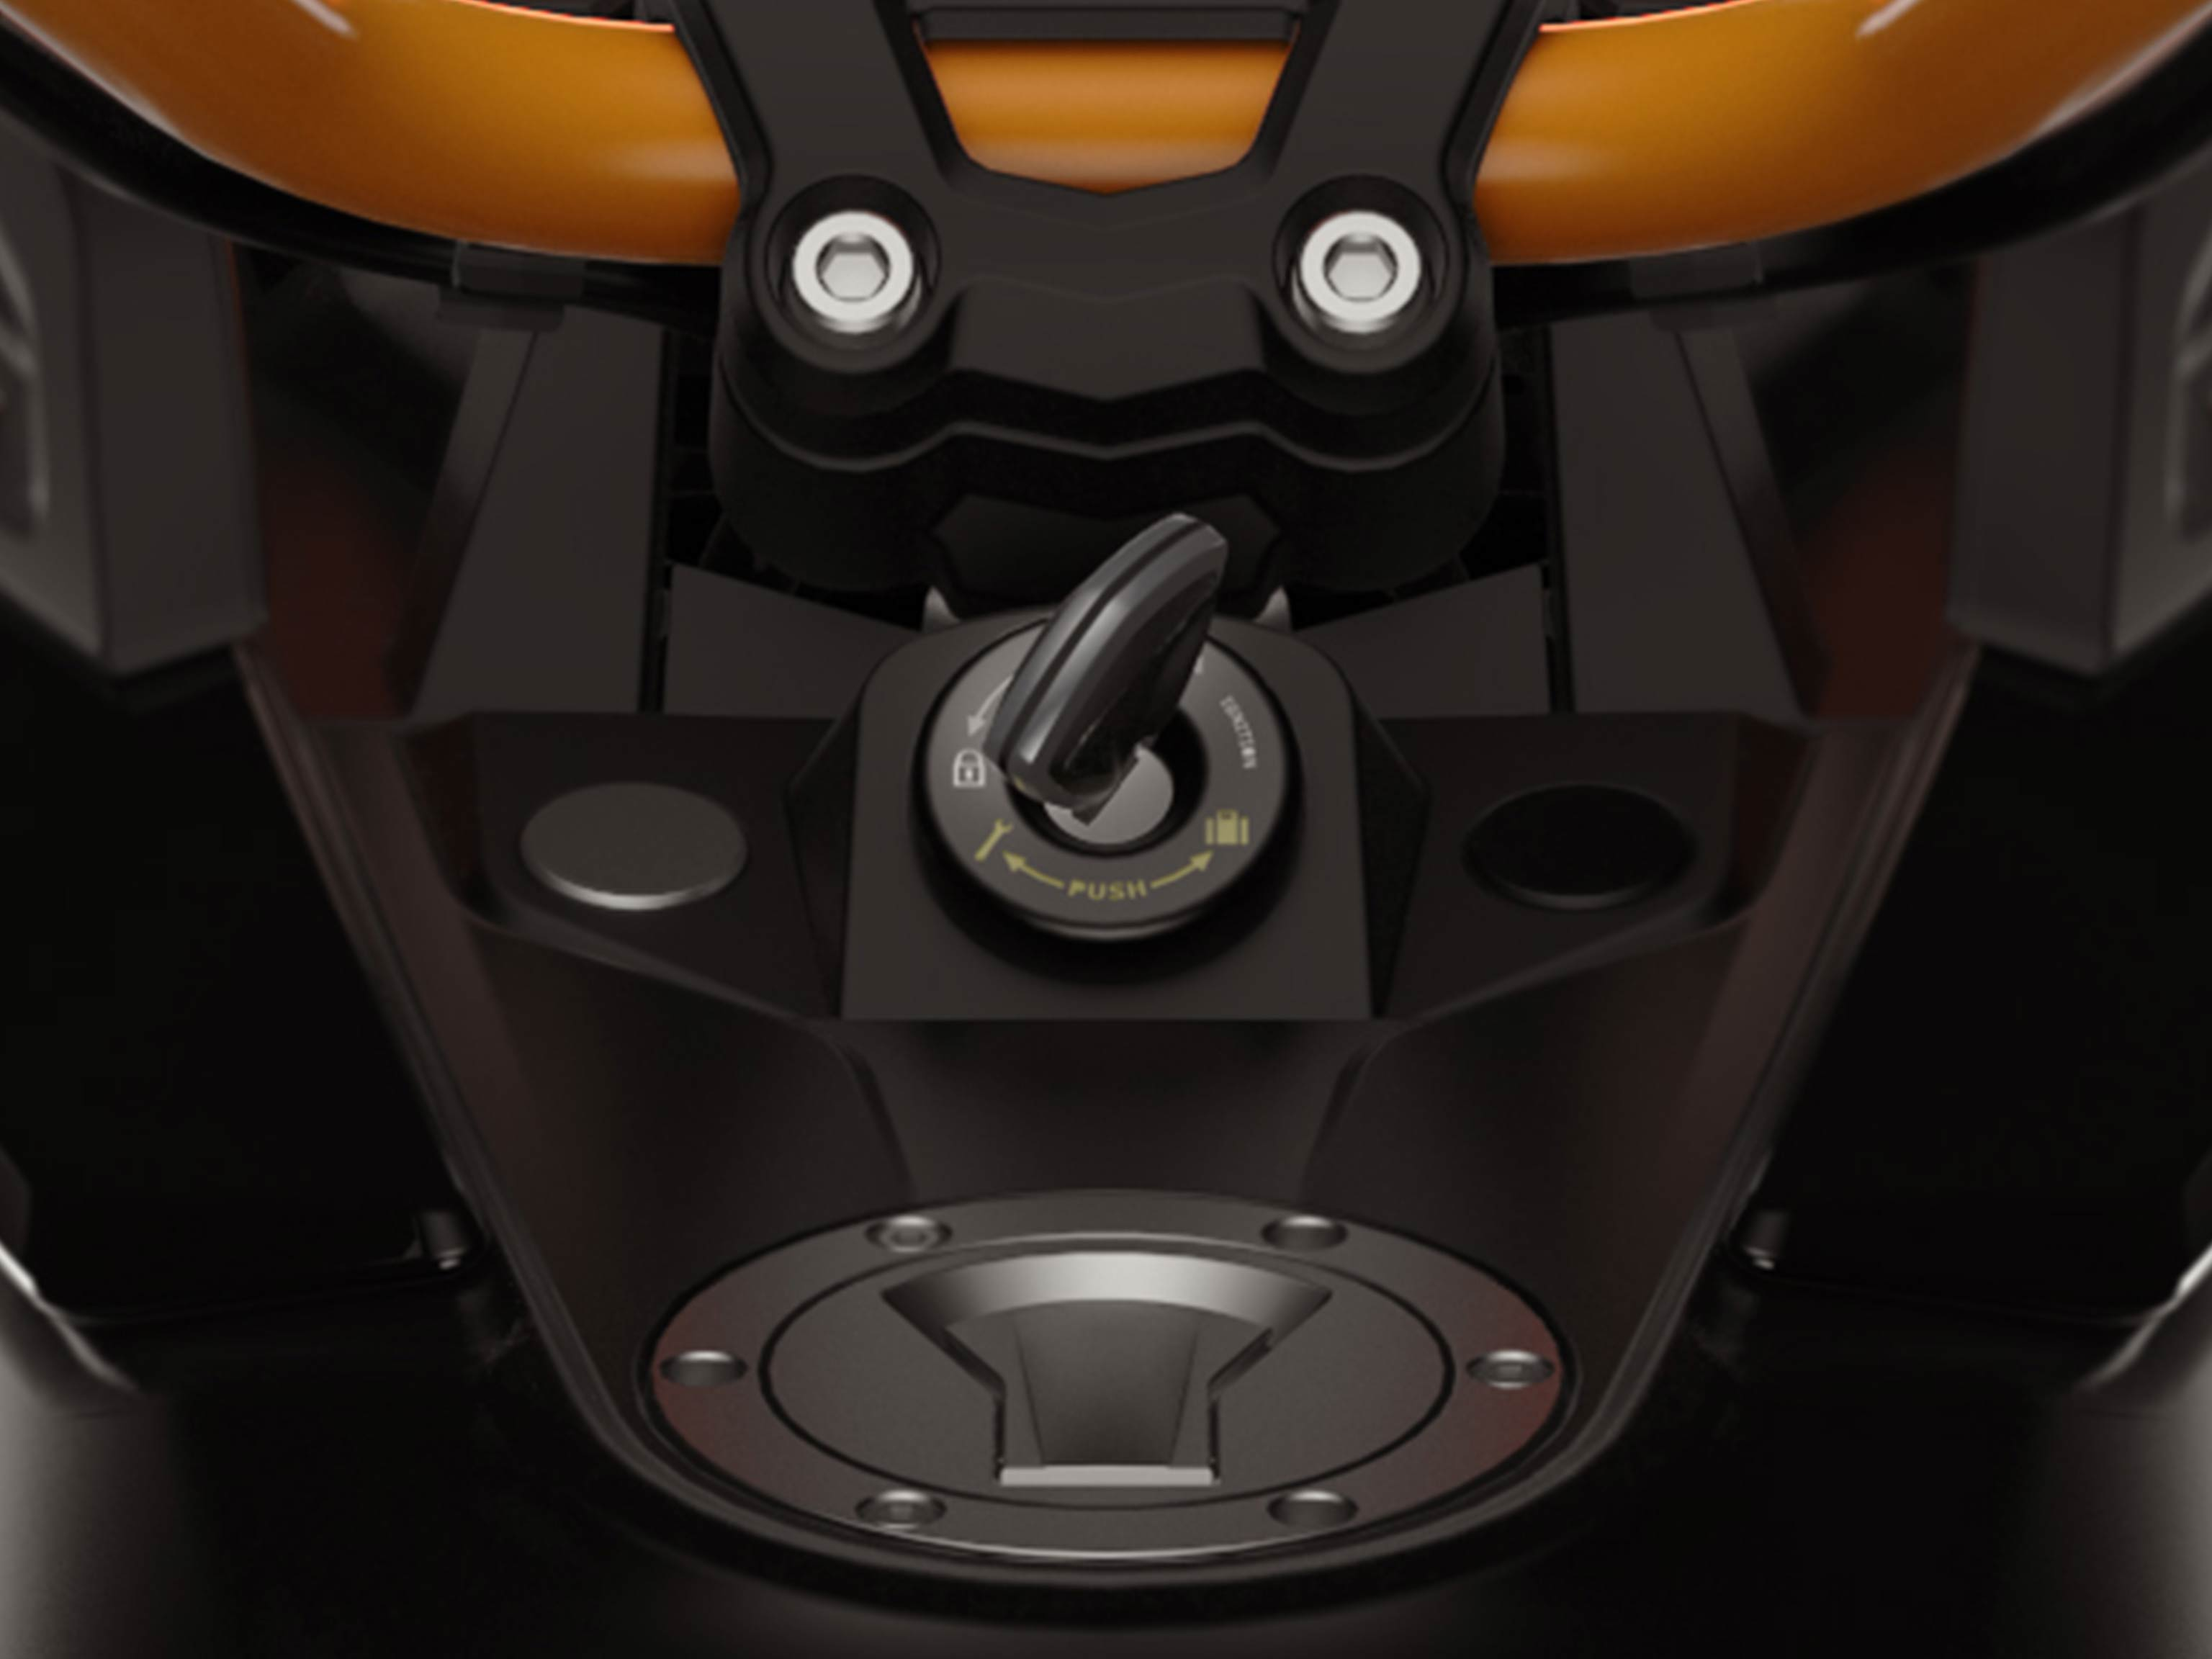 The anti-theft technology on the Can-Am Spyder F3